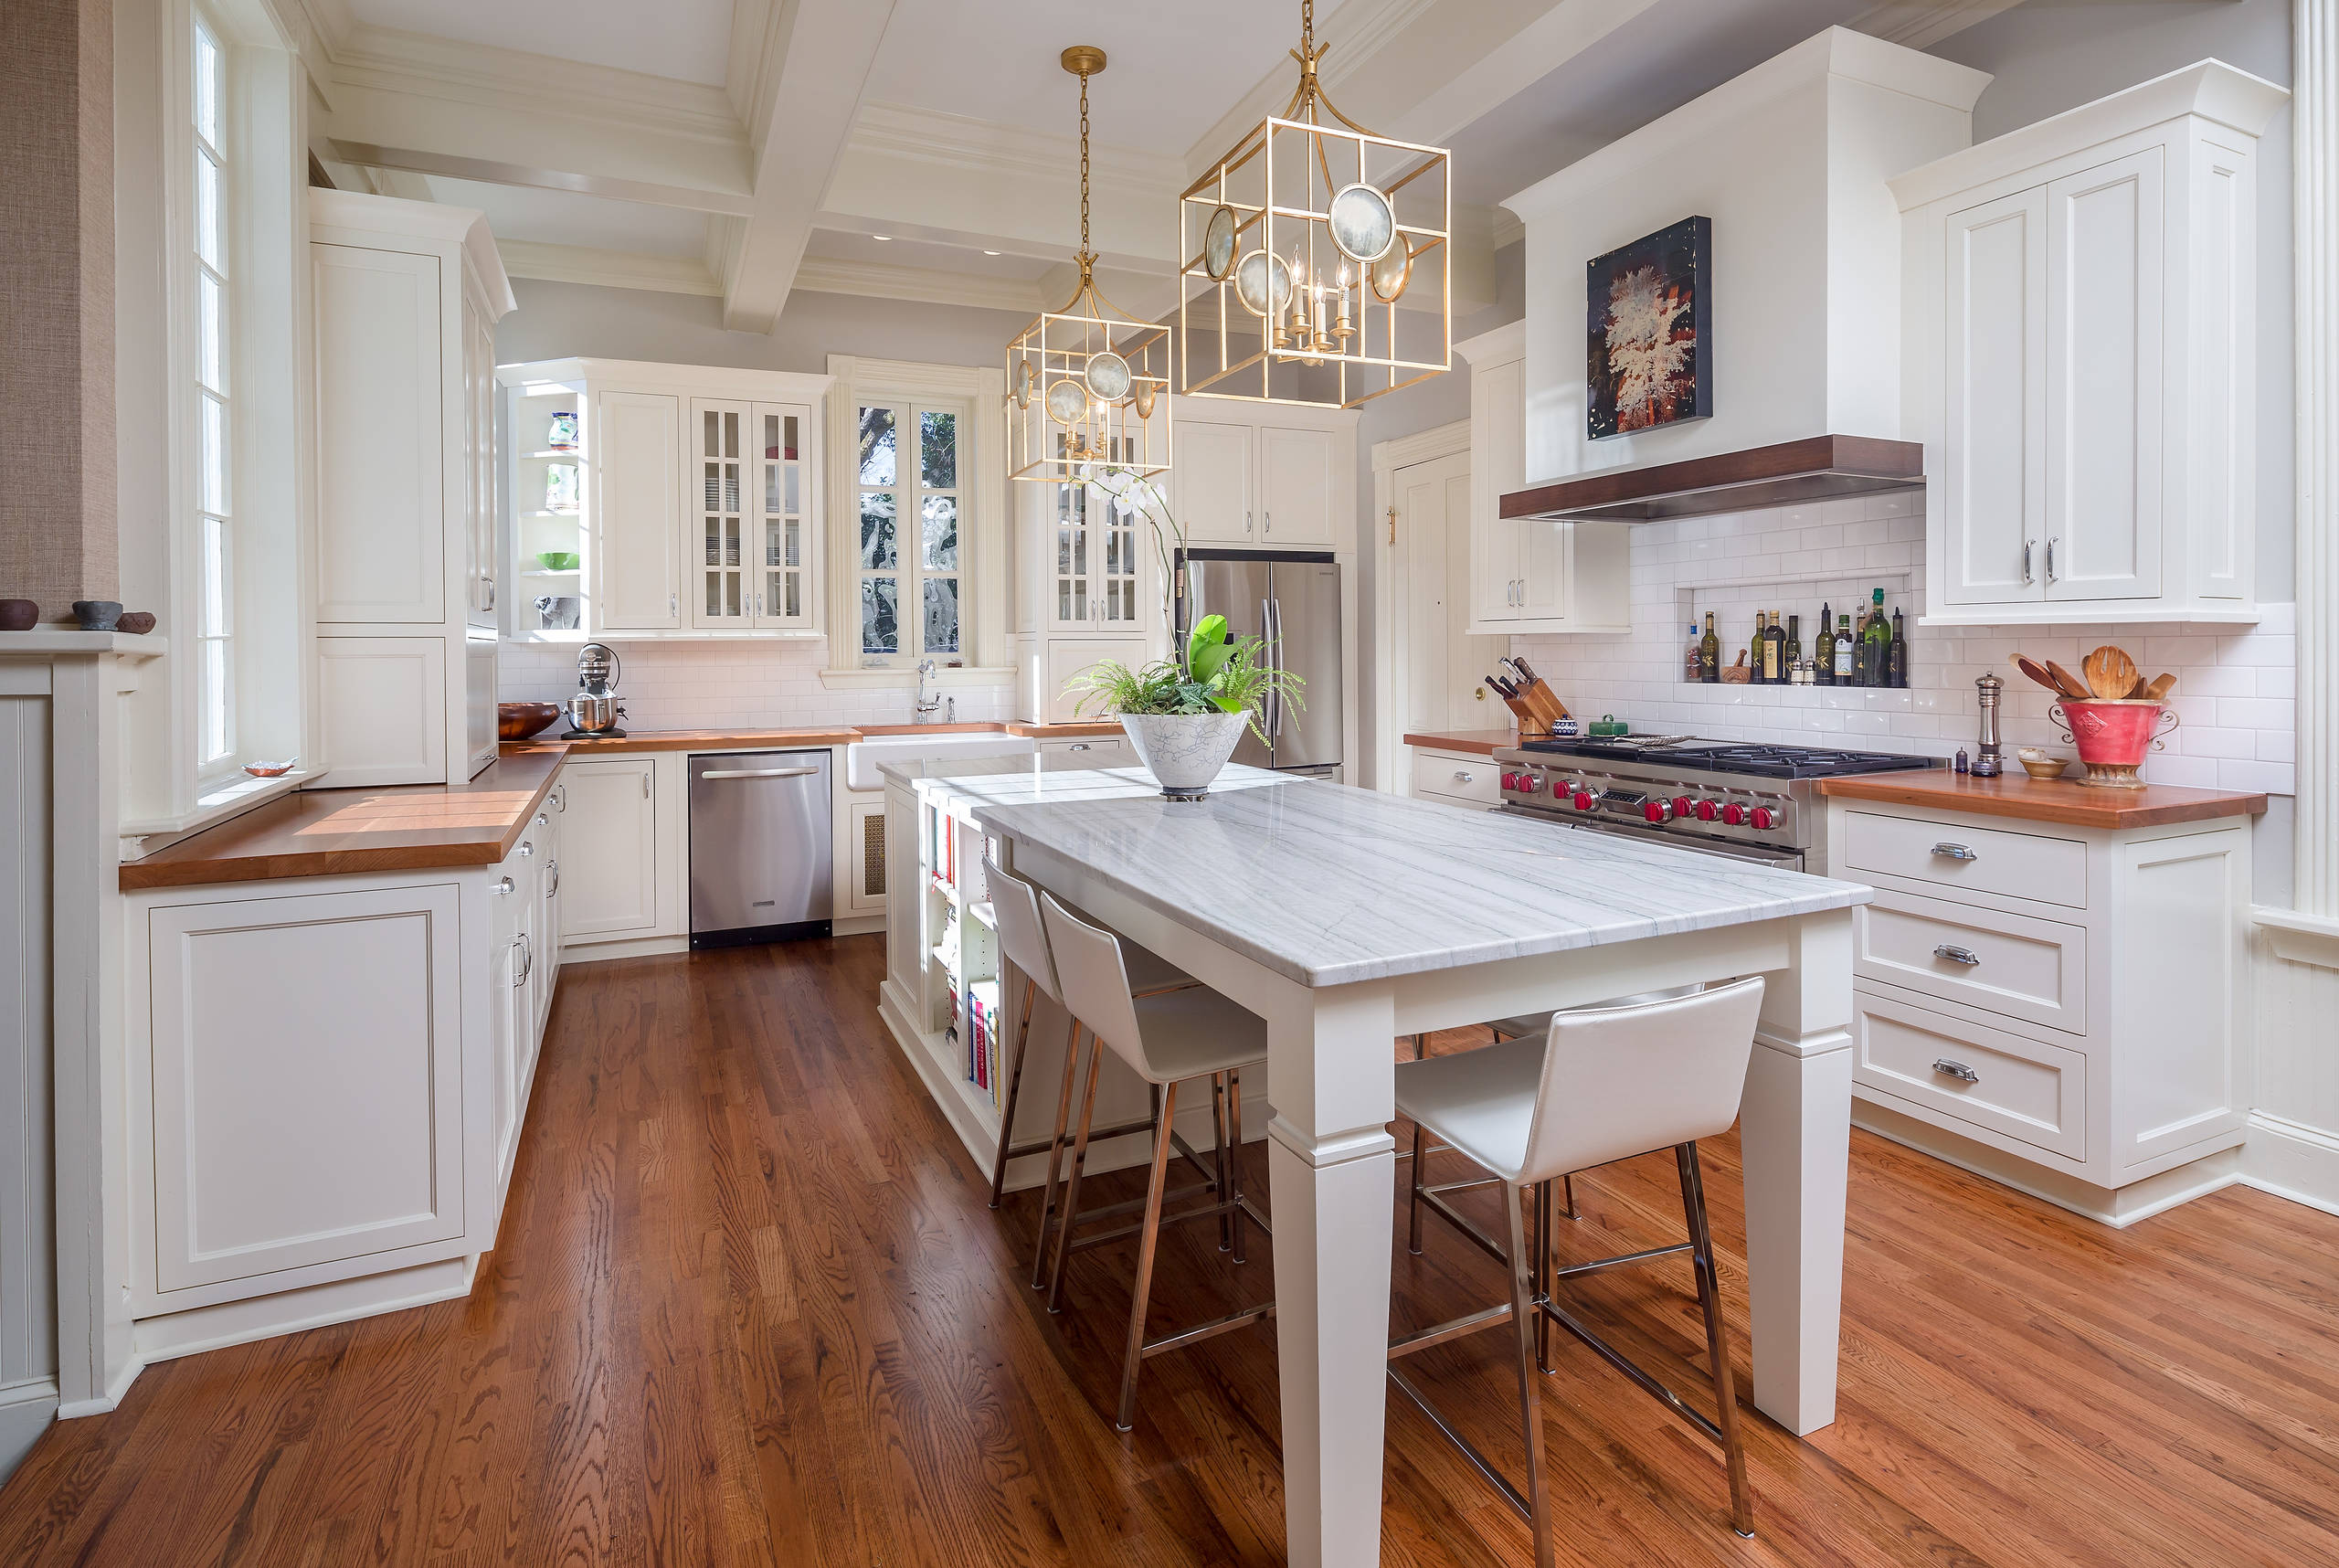 u shaped kitchen designs Traditional Kitchen in Atlanta bamboo island brown countertop chic kitchen clerestory cabinetspendant lights over islands